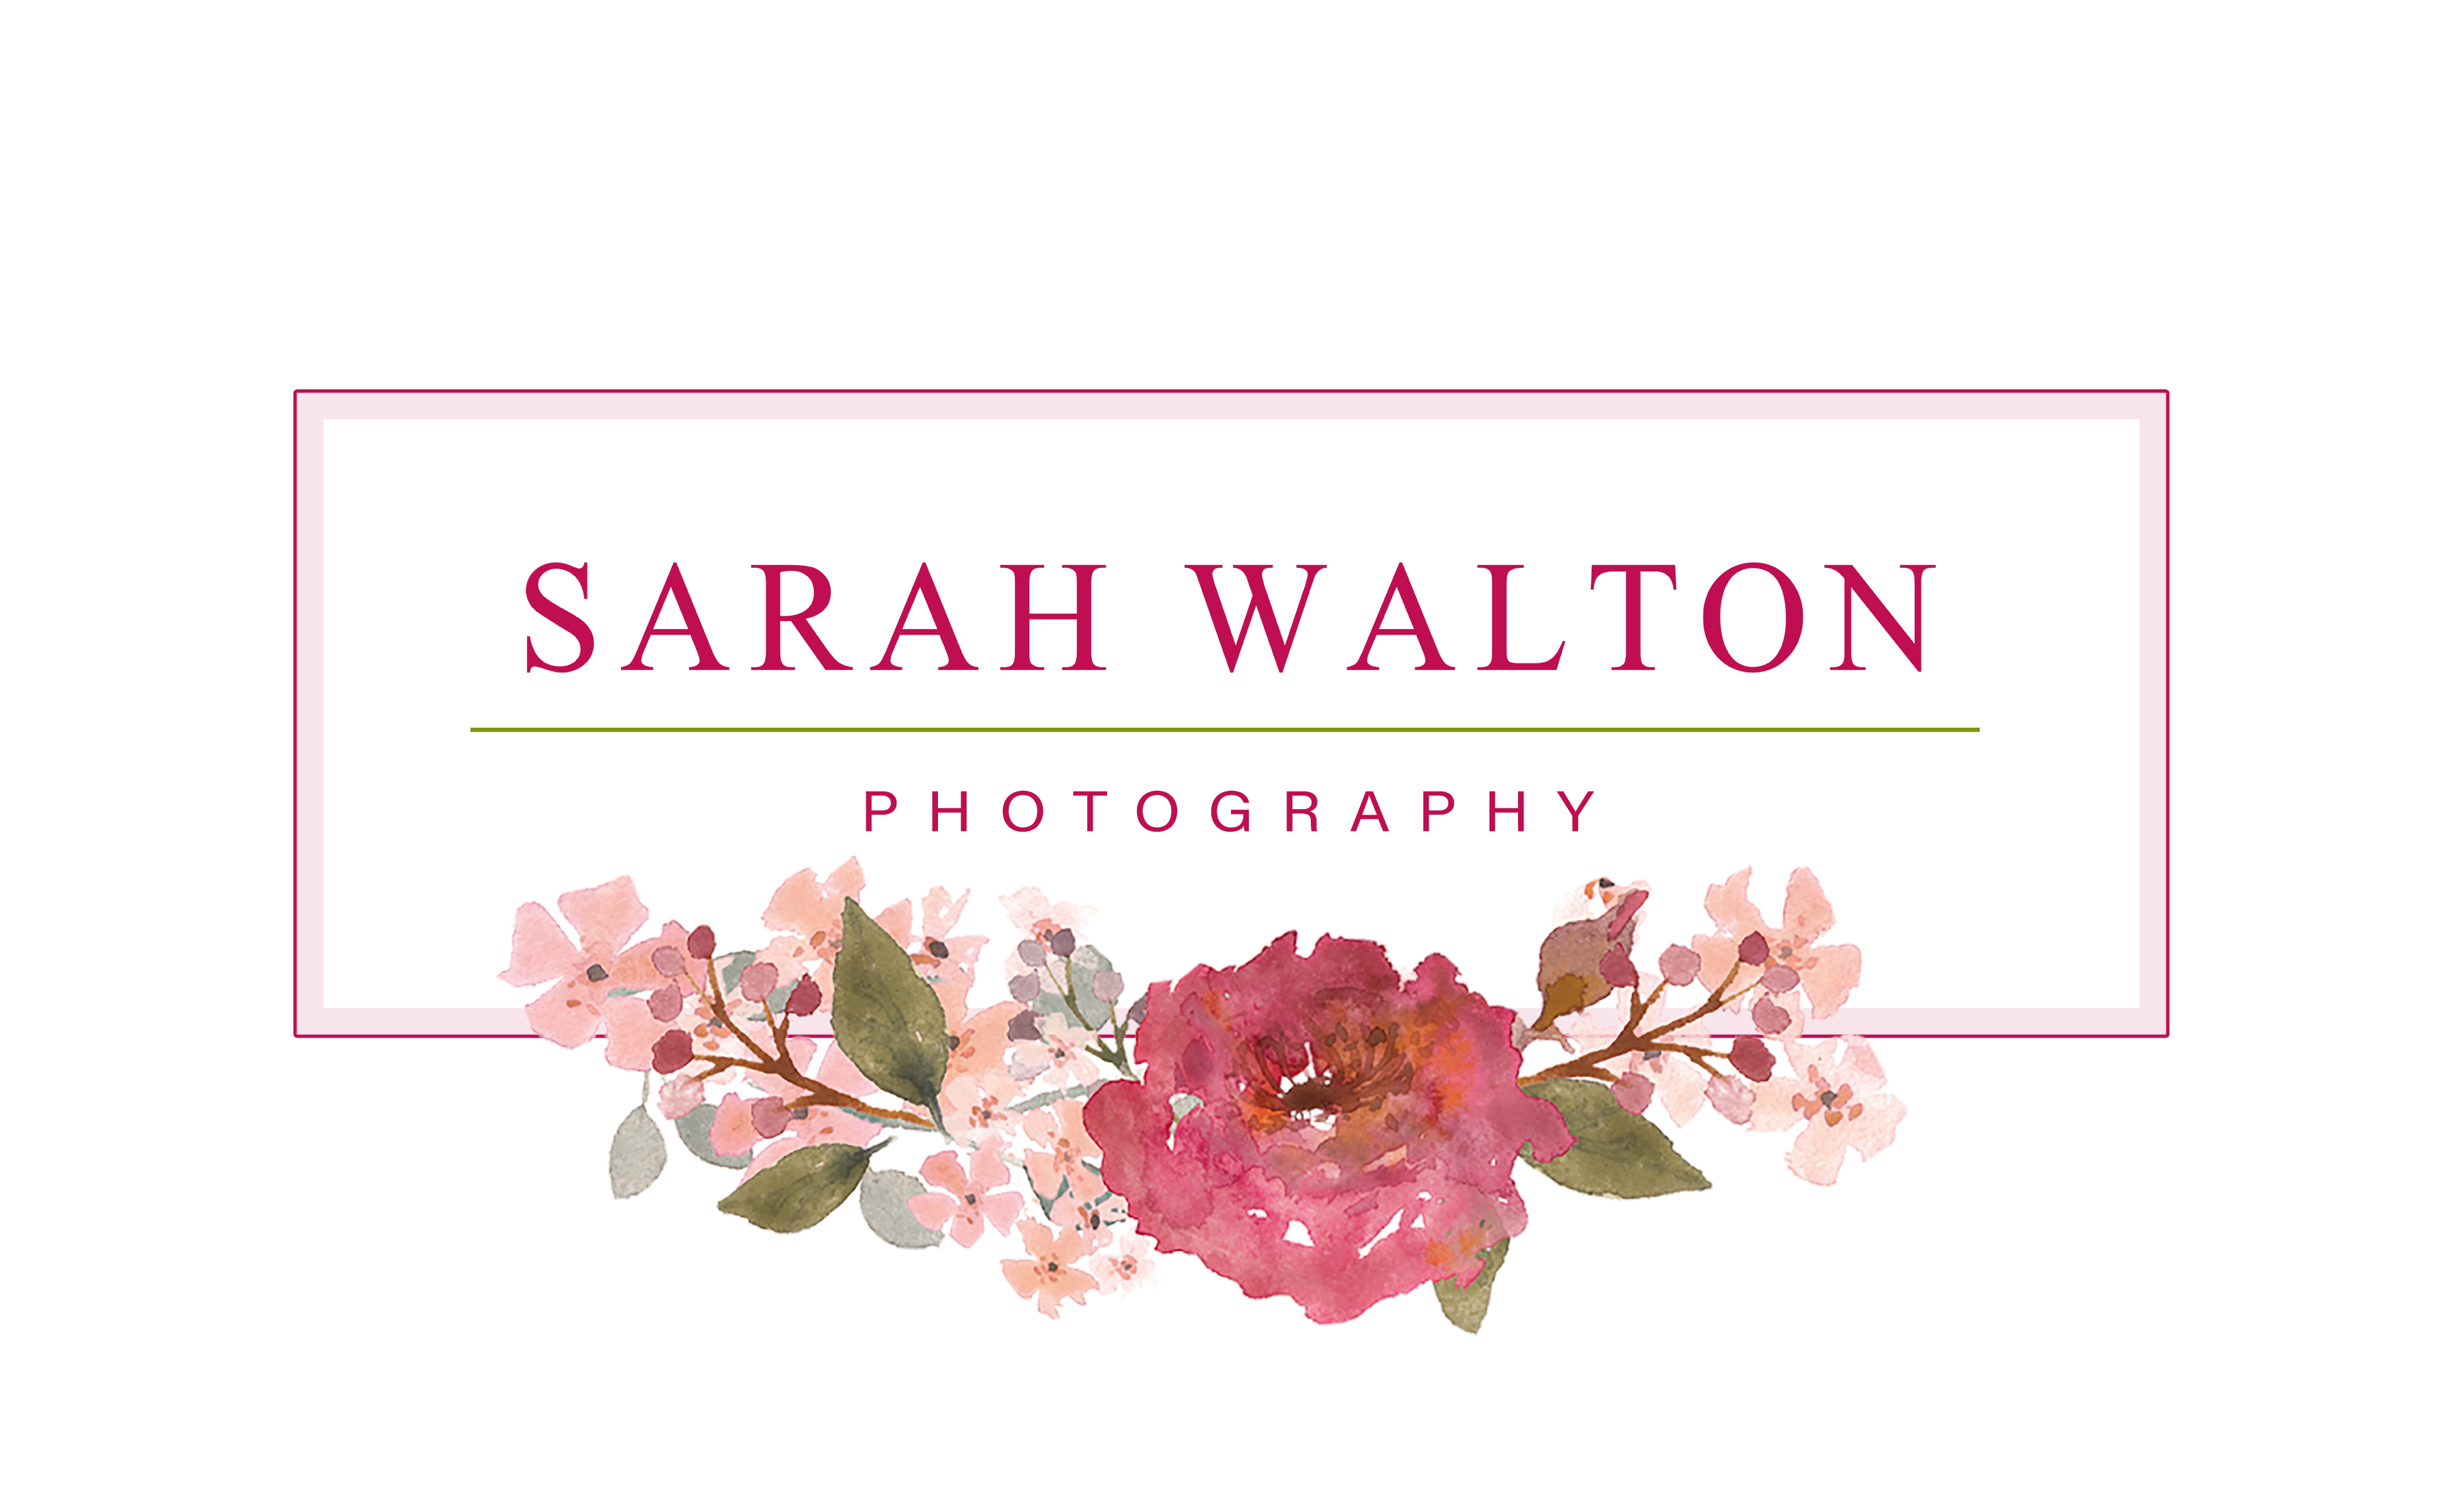 Sarah Walton Photography